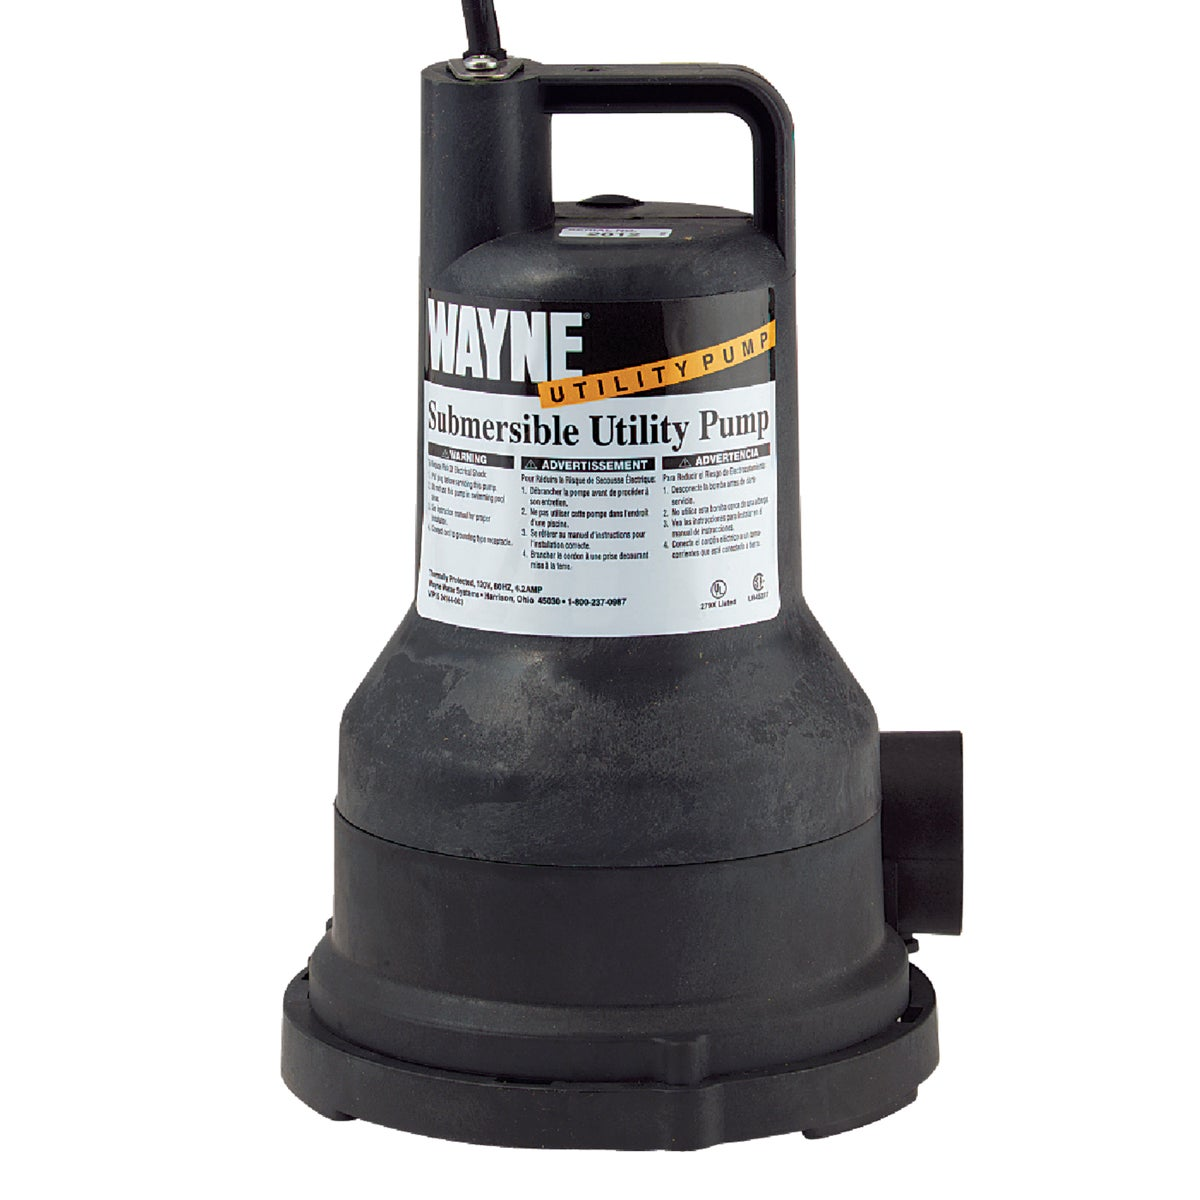 1/5HP SUBM UTILITY PUMP - VIP15-57700 by Wayne Water Systems